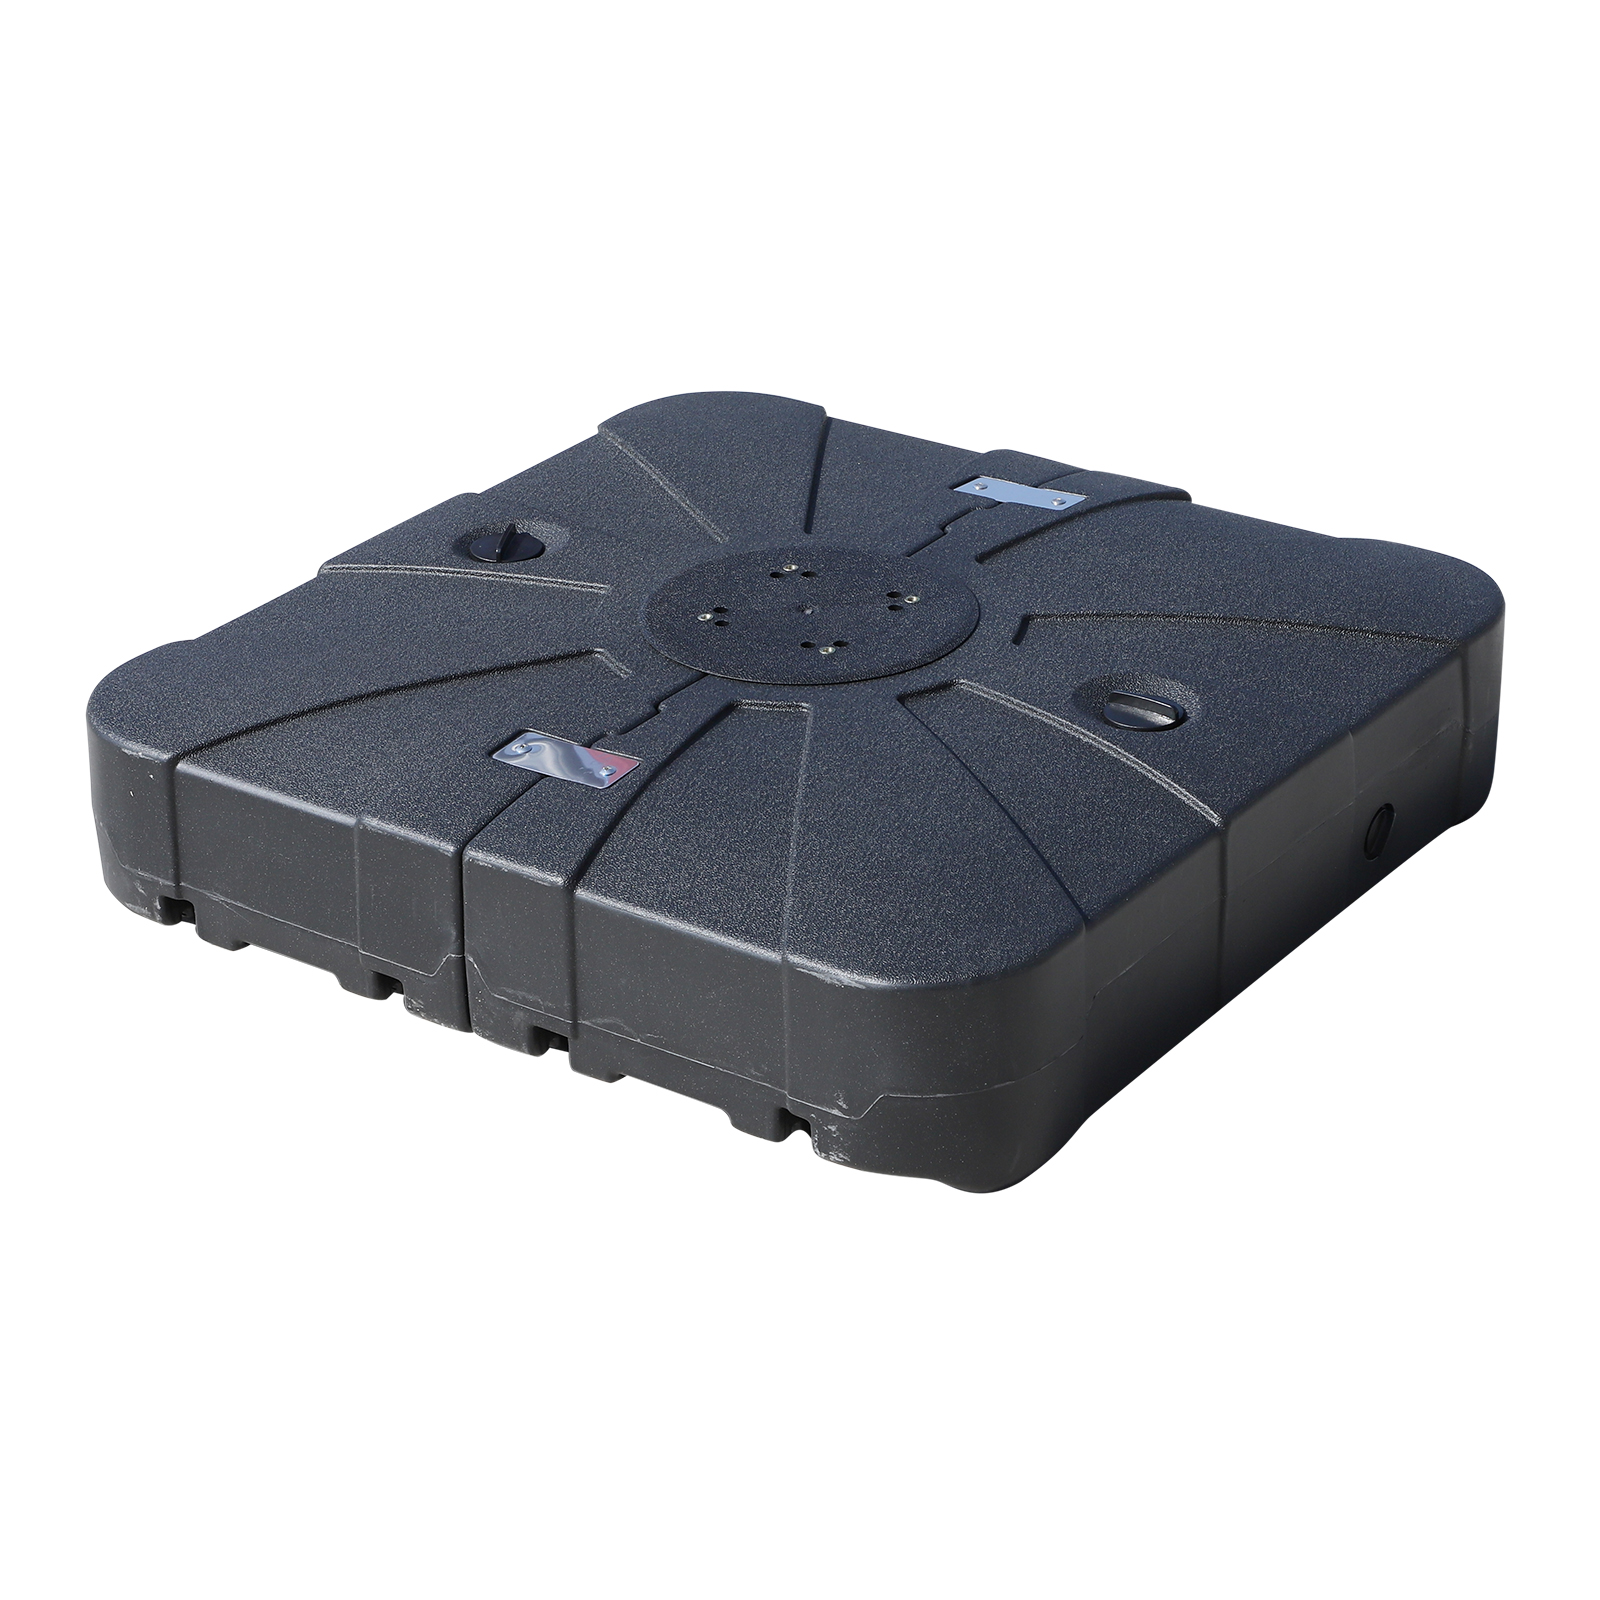 Outsunny Umbrella Base Fillable With Water And Sand 4 Wheels Max. 125Kg Outdoor HDPE 84x84x19 Cm Black